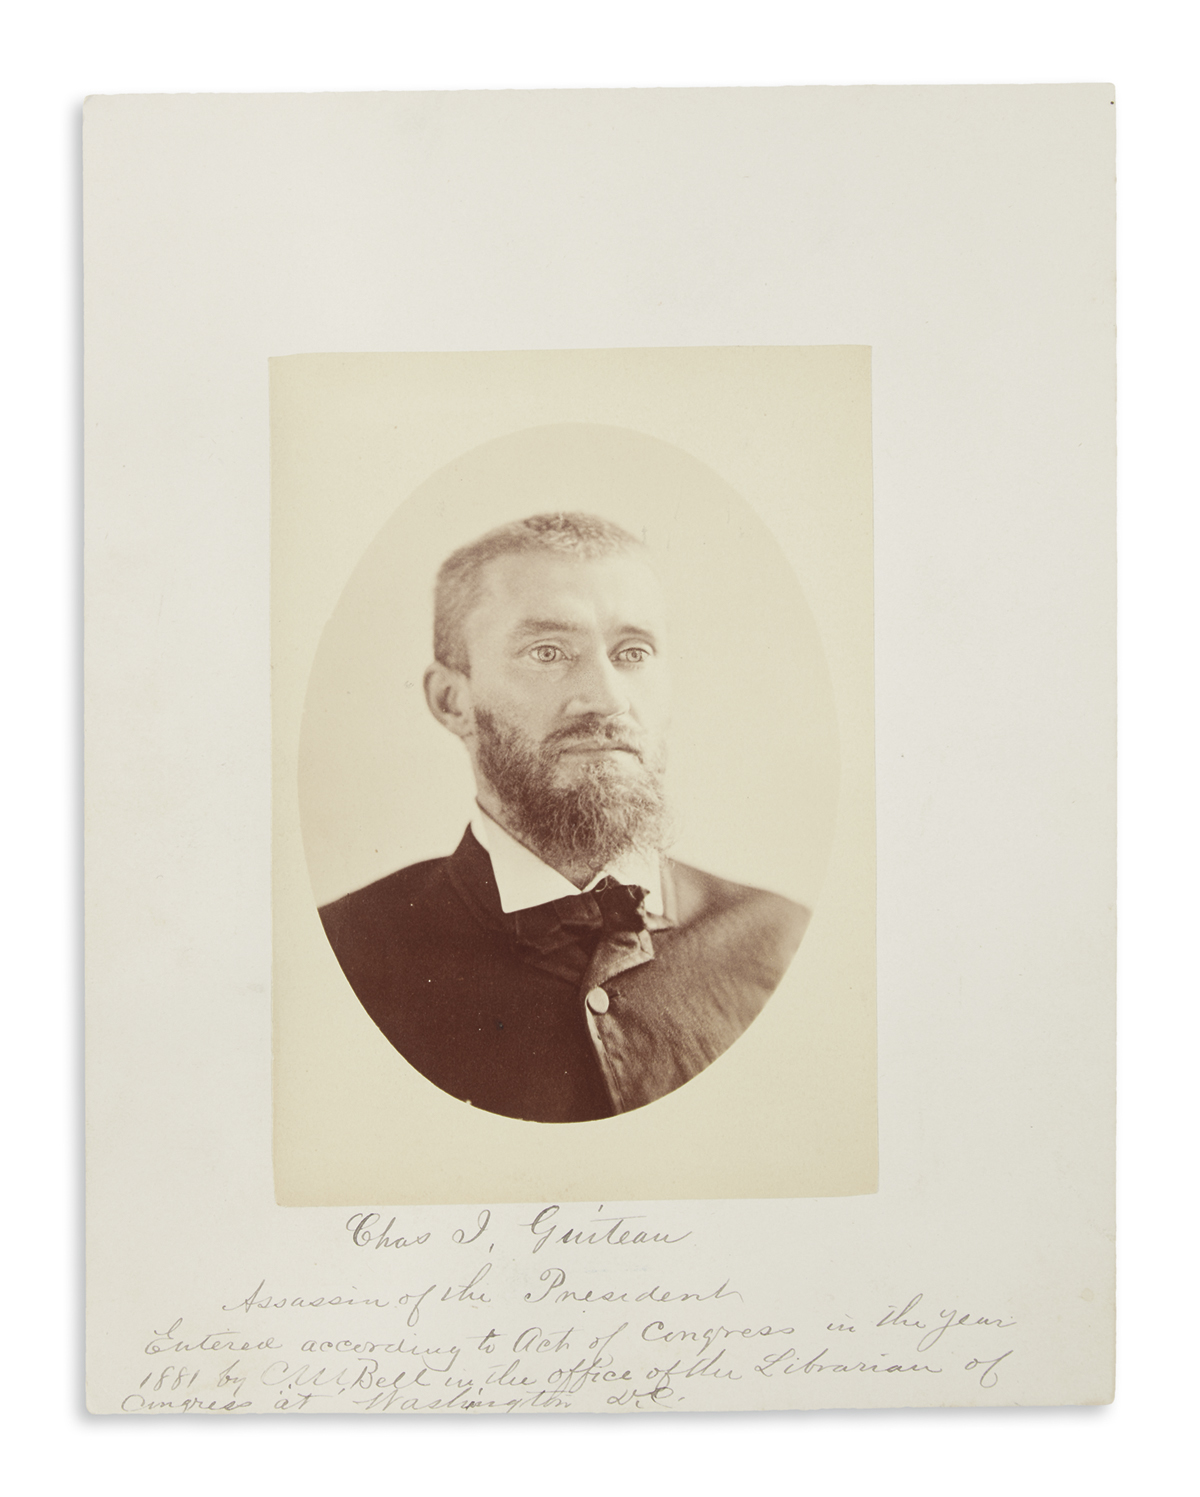 (GARFIELD ASSASSINATION.) Collection of autographs, photographs, and ephemera relating to the Garfield assassination.